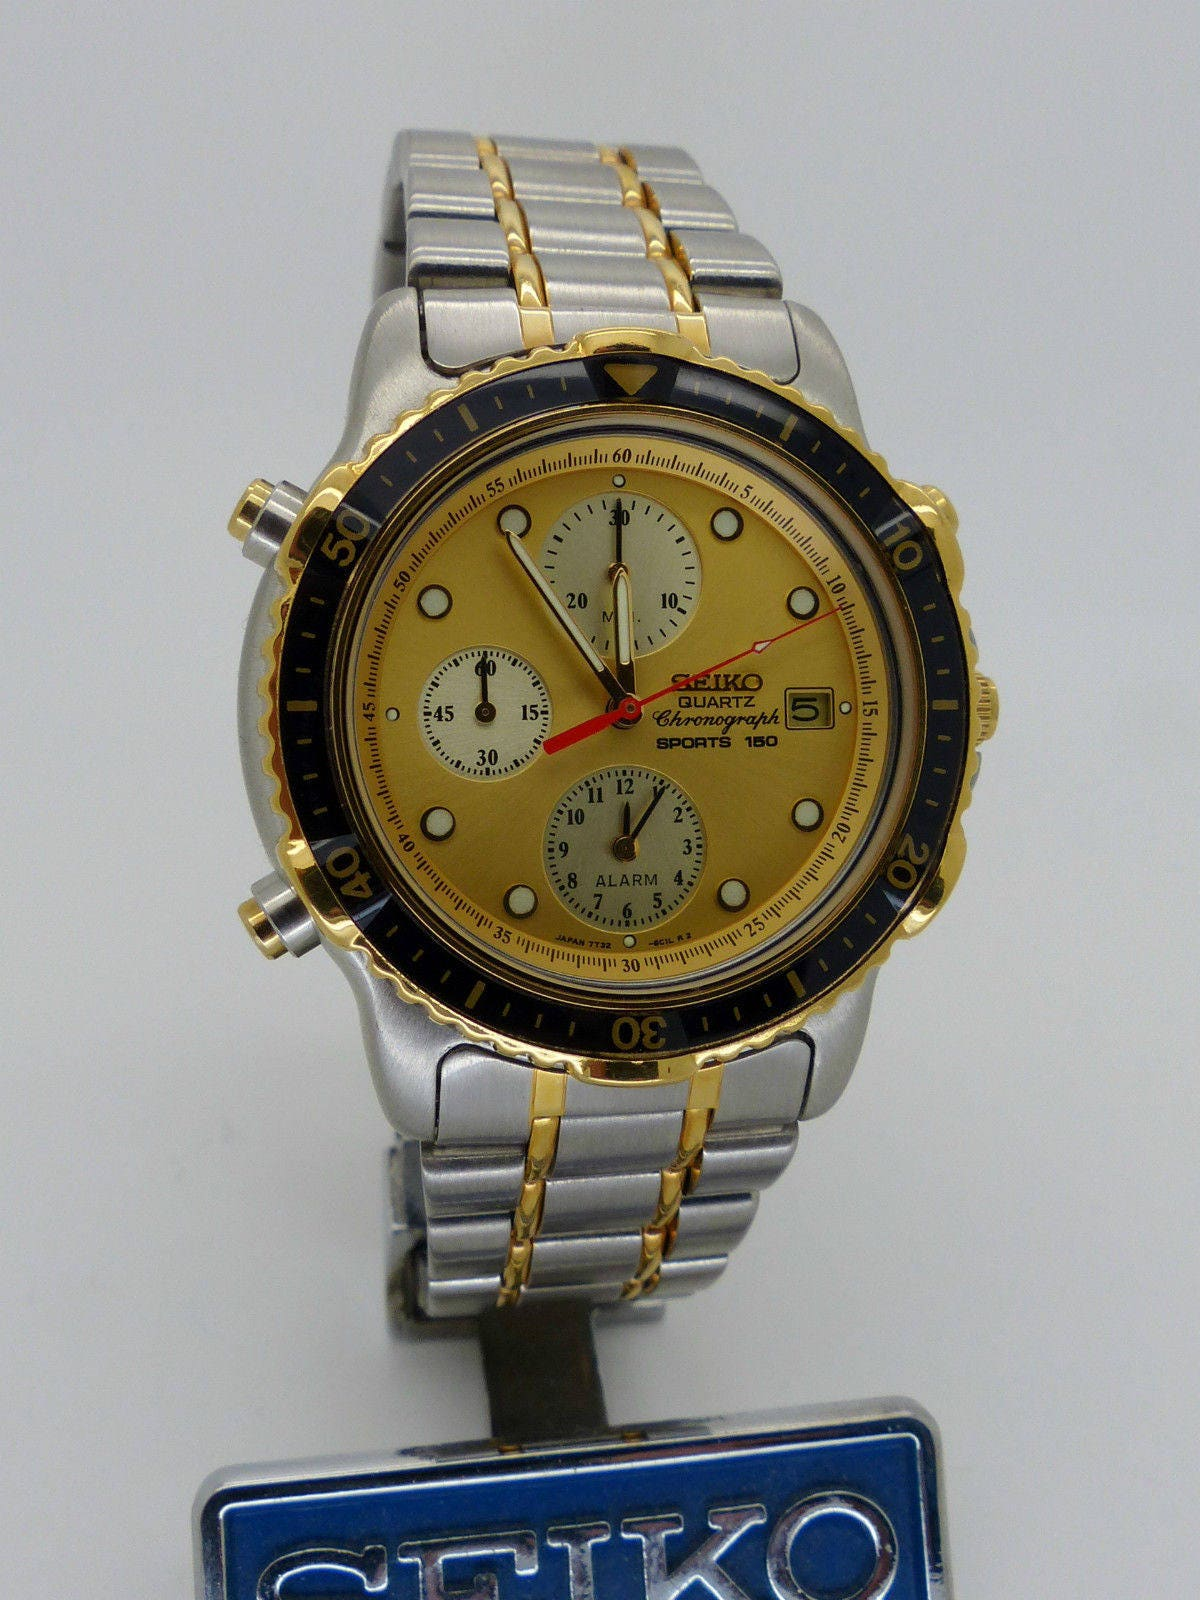 seiko 7t32 6b9c alarm chronograph new old stock ref etsy rh etsy com seiko 7t42 instructions